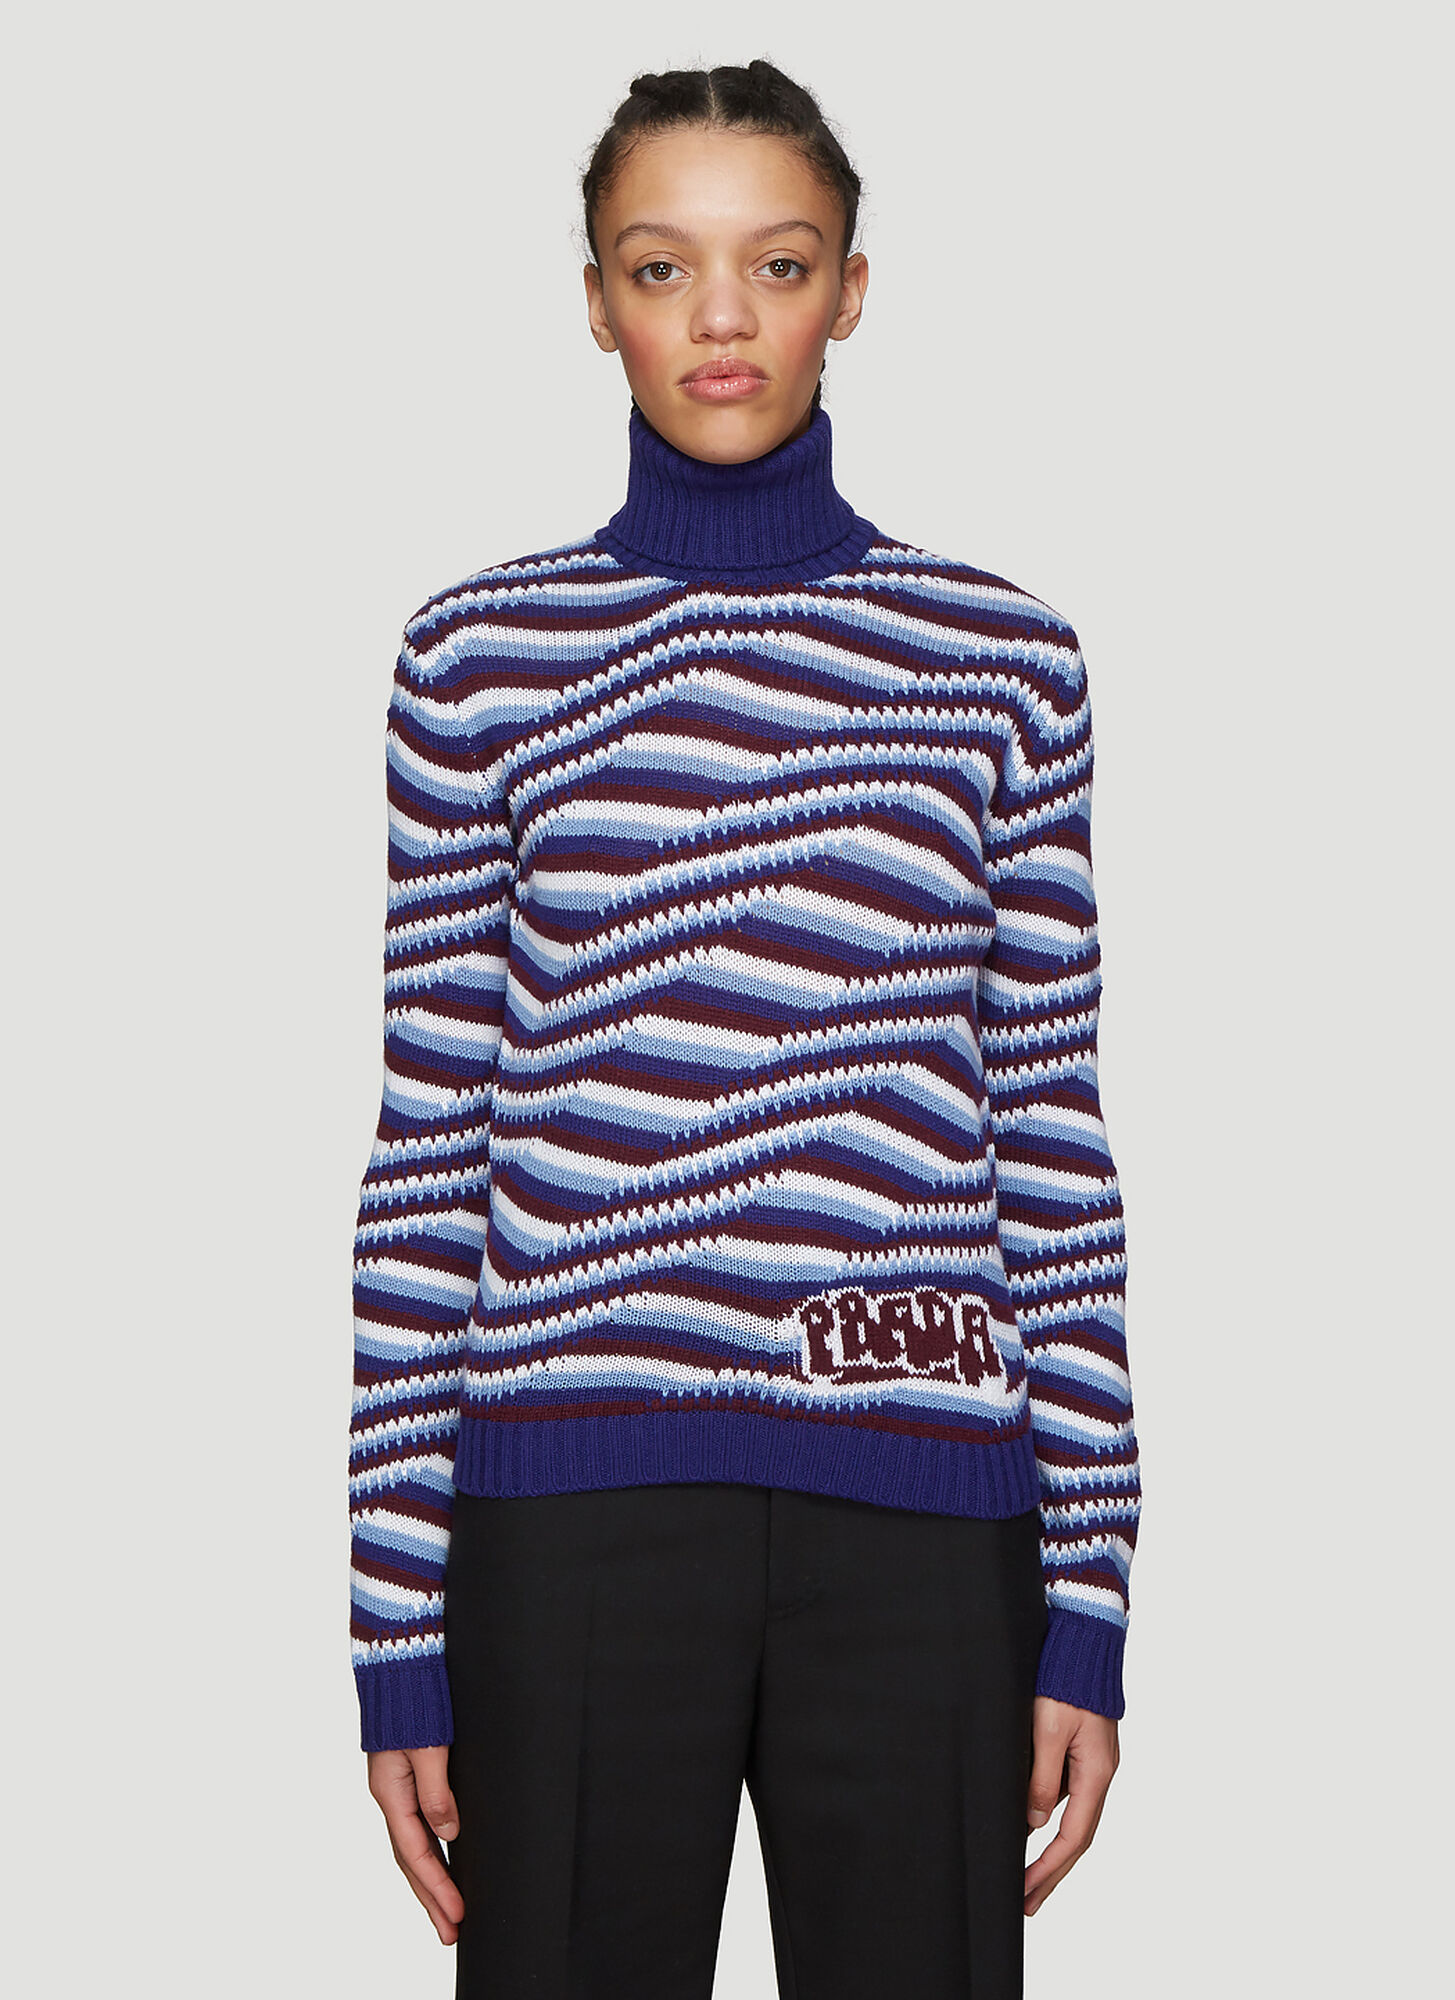 Prada Striped Cashmere Turtleneck Sweater in Blue